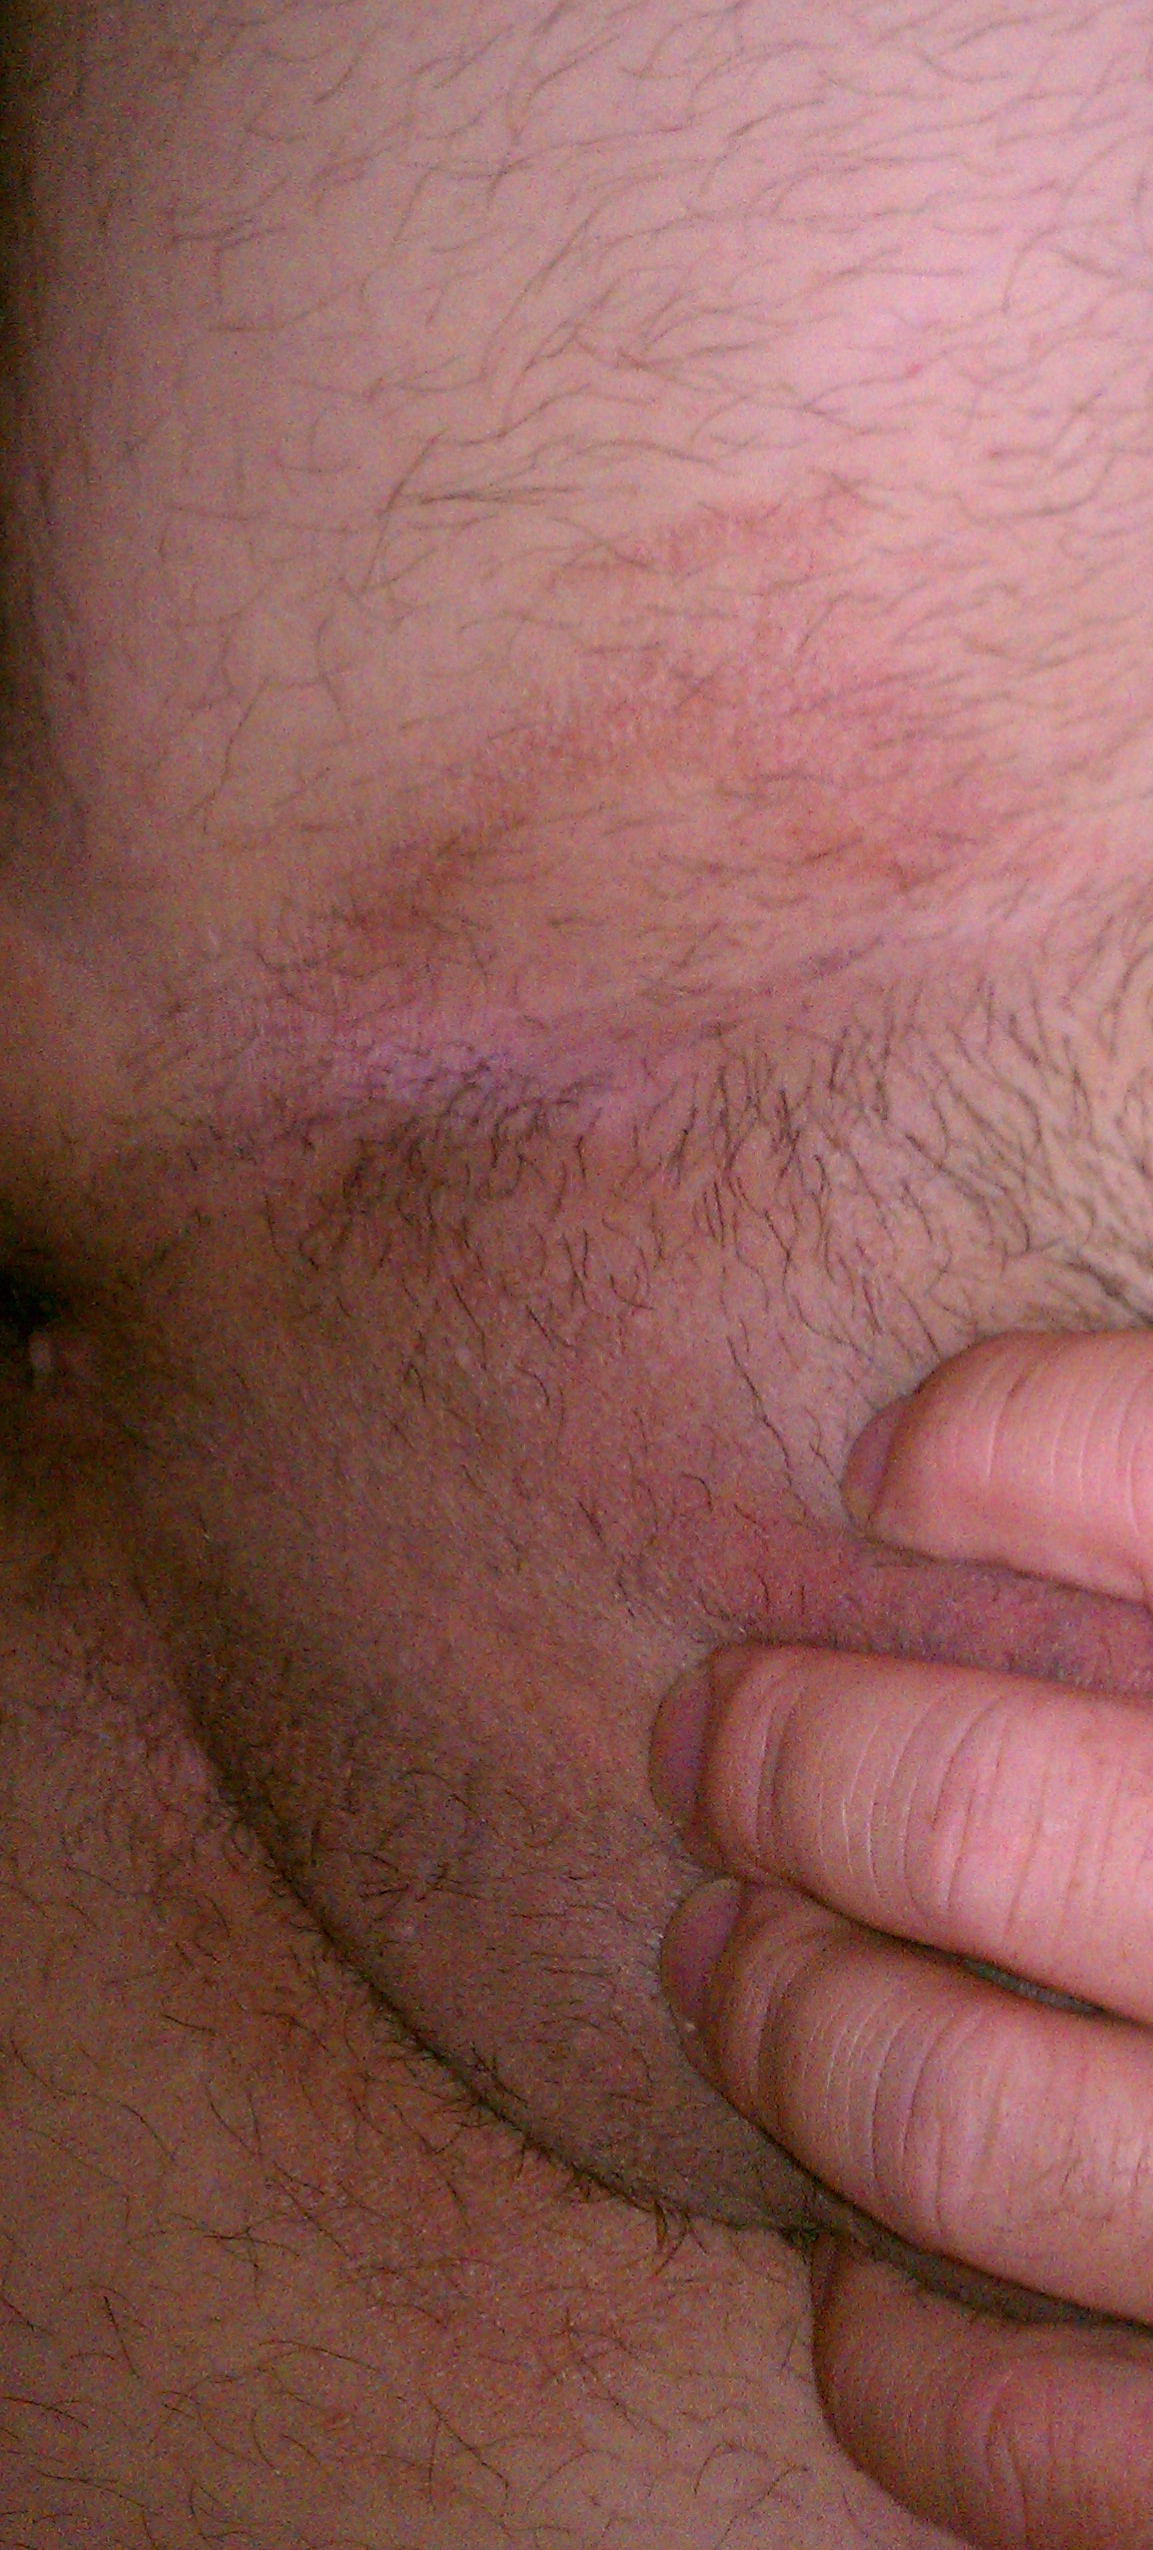 Groin Rash Pictures